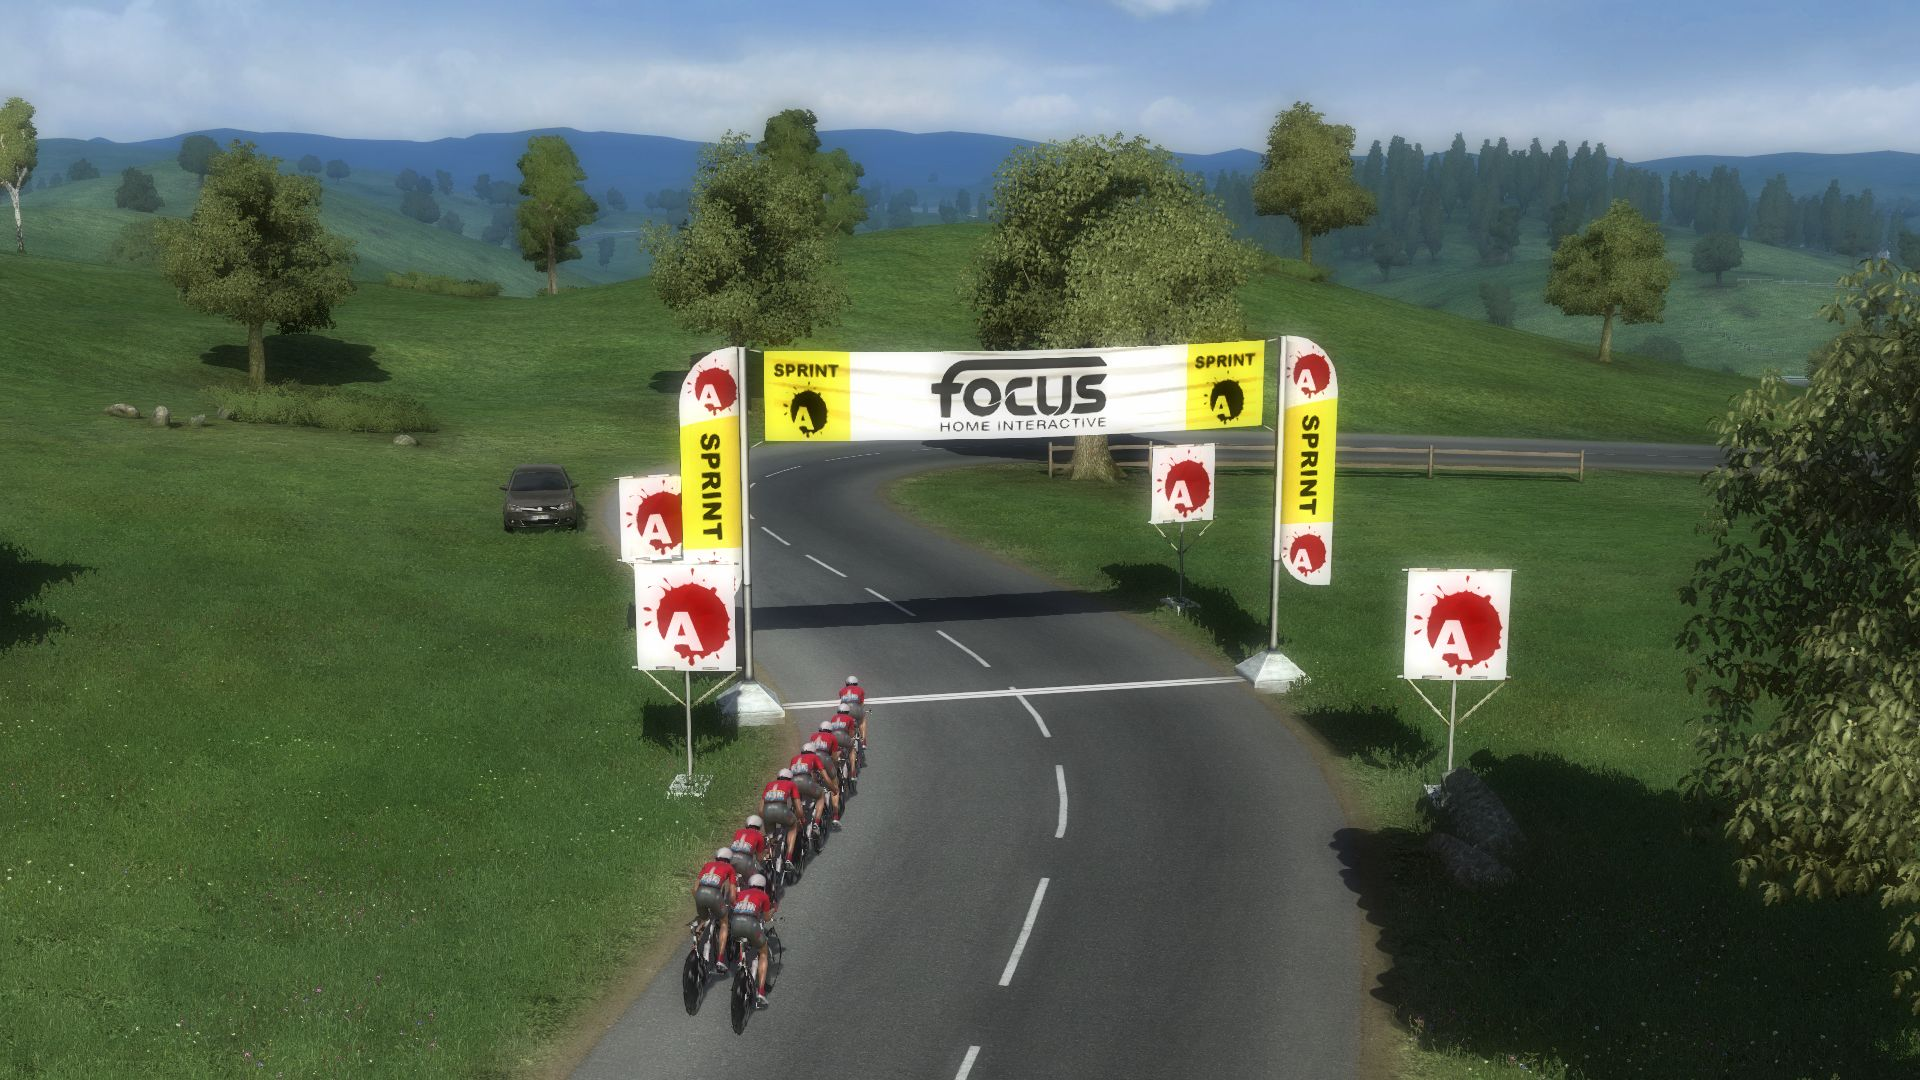 pcmdaily.com/images/mg/2019/Races/HC/Slovenie/mg19_slo_s01_08.jpg